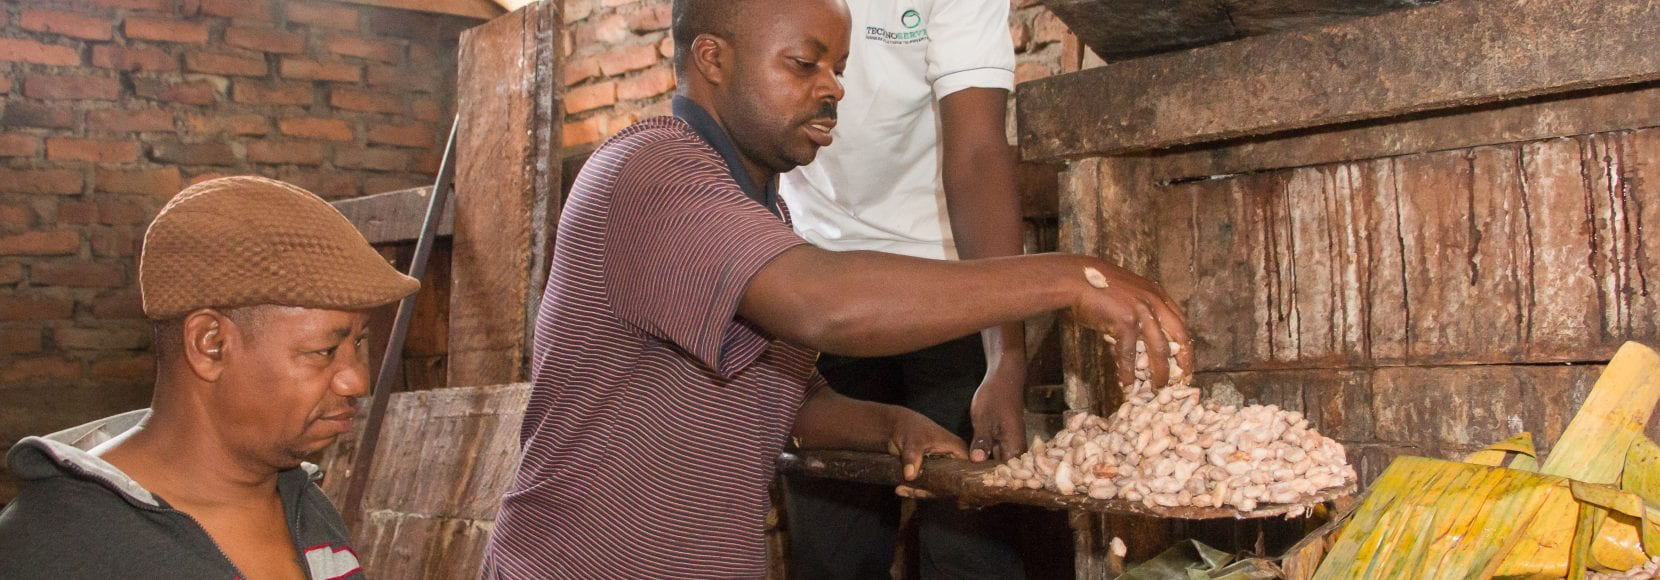 Three men working with cocoa beans